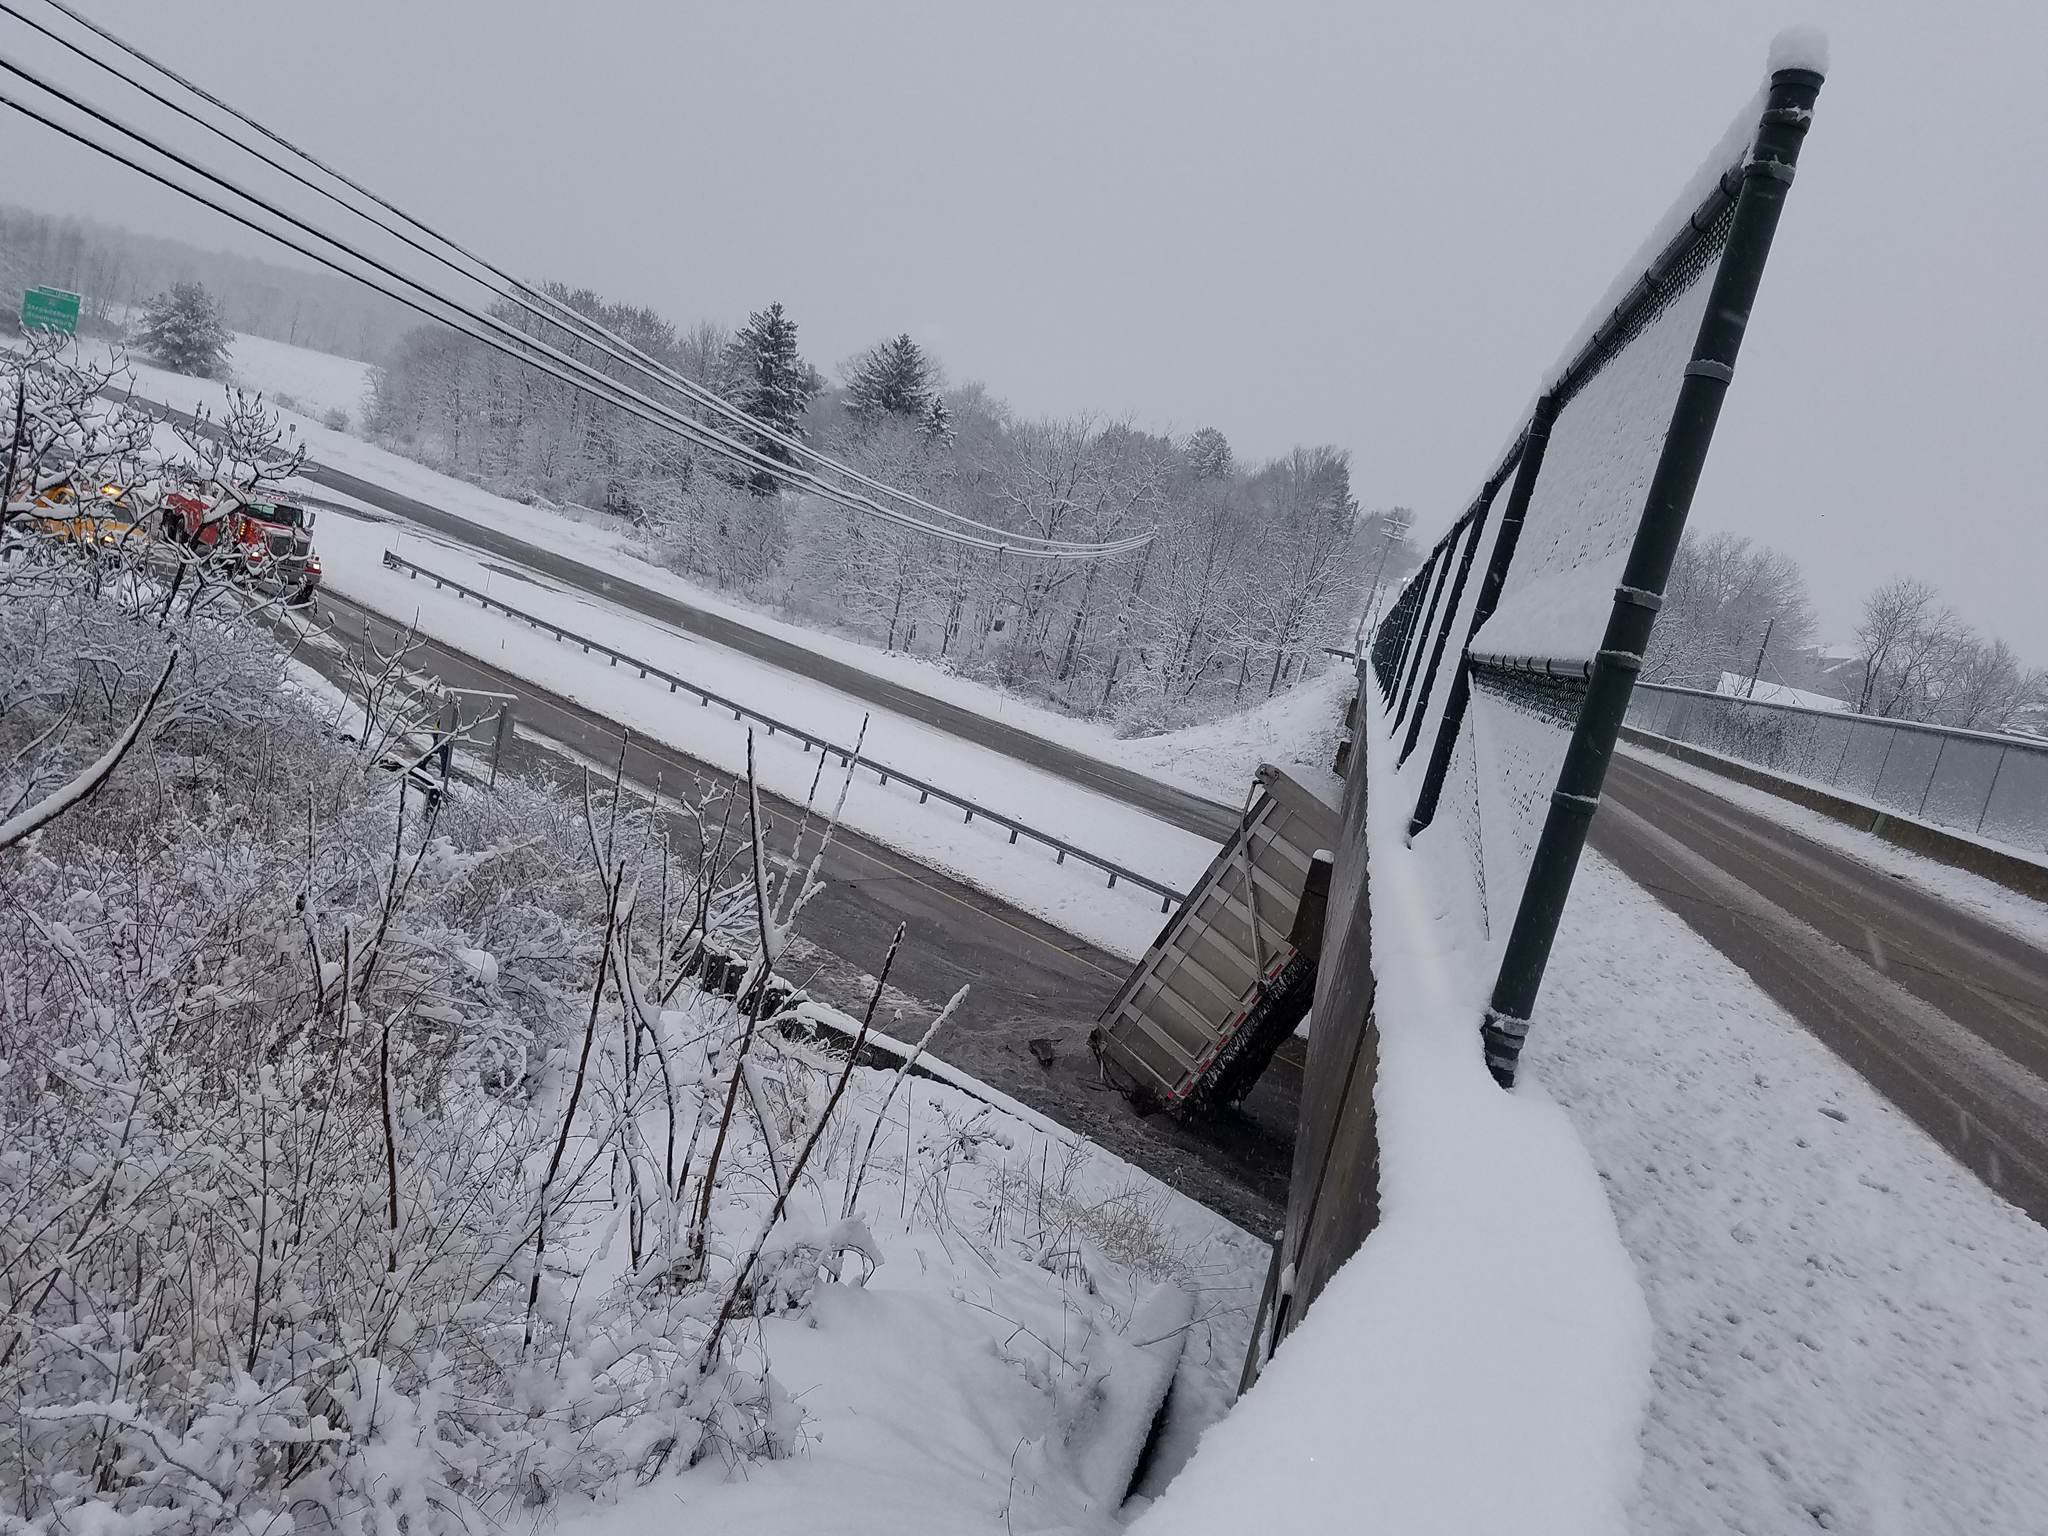 Bridge remains open following PennDOT truck striking into it